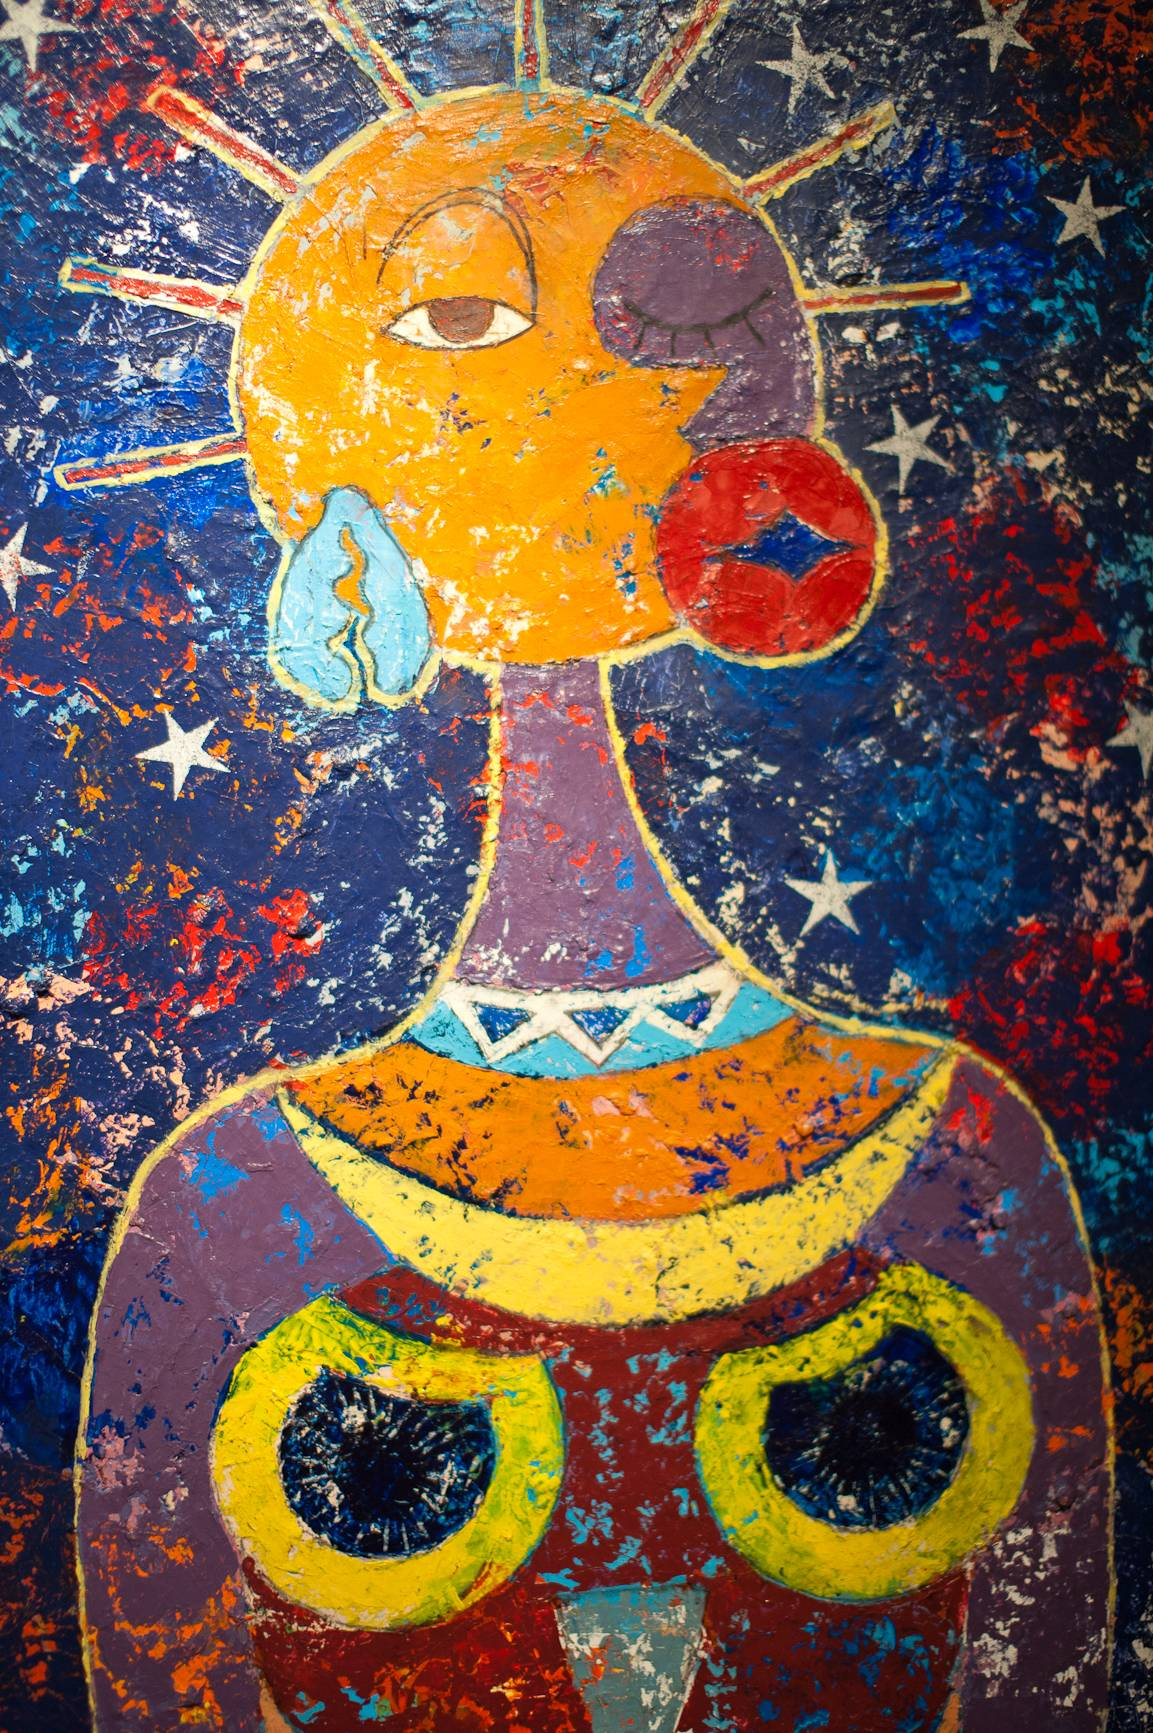 African Art on Display1